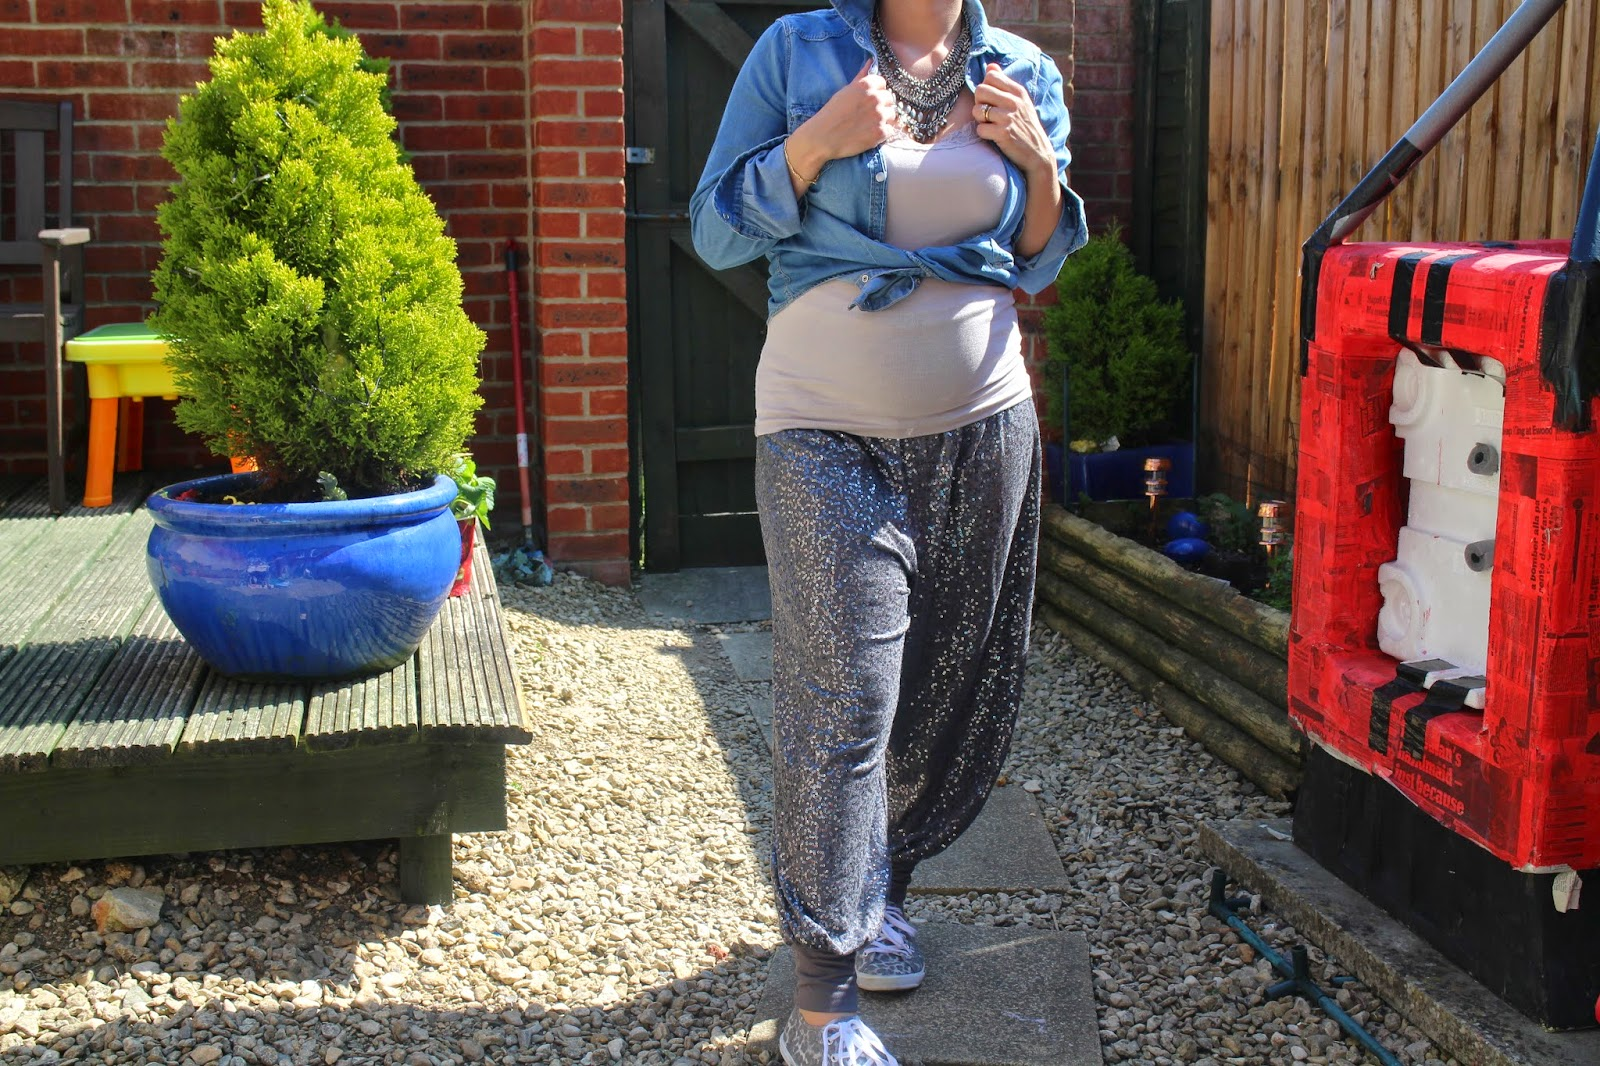 Sequins, Trousers, How to dress when pregnant, Maternity fashion, Maternity Style, Street Style, Casual fashion, OOTD, Fashion, Fashion inspiration, H&M